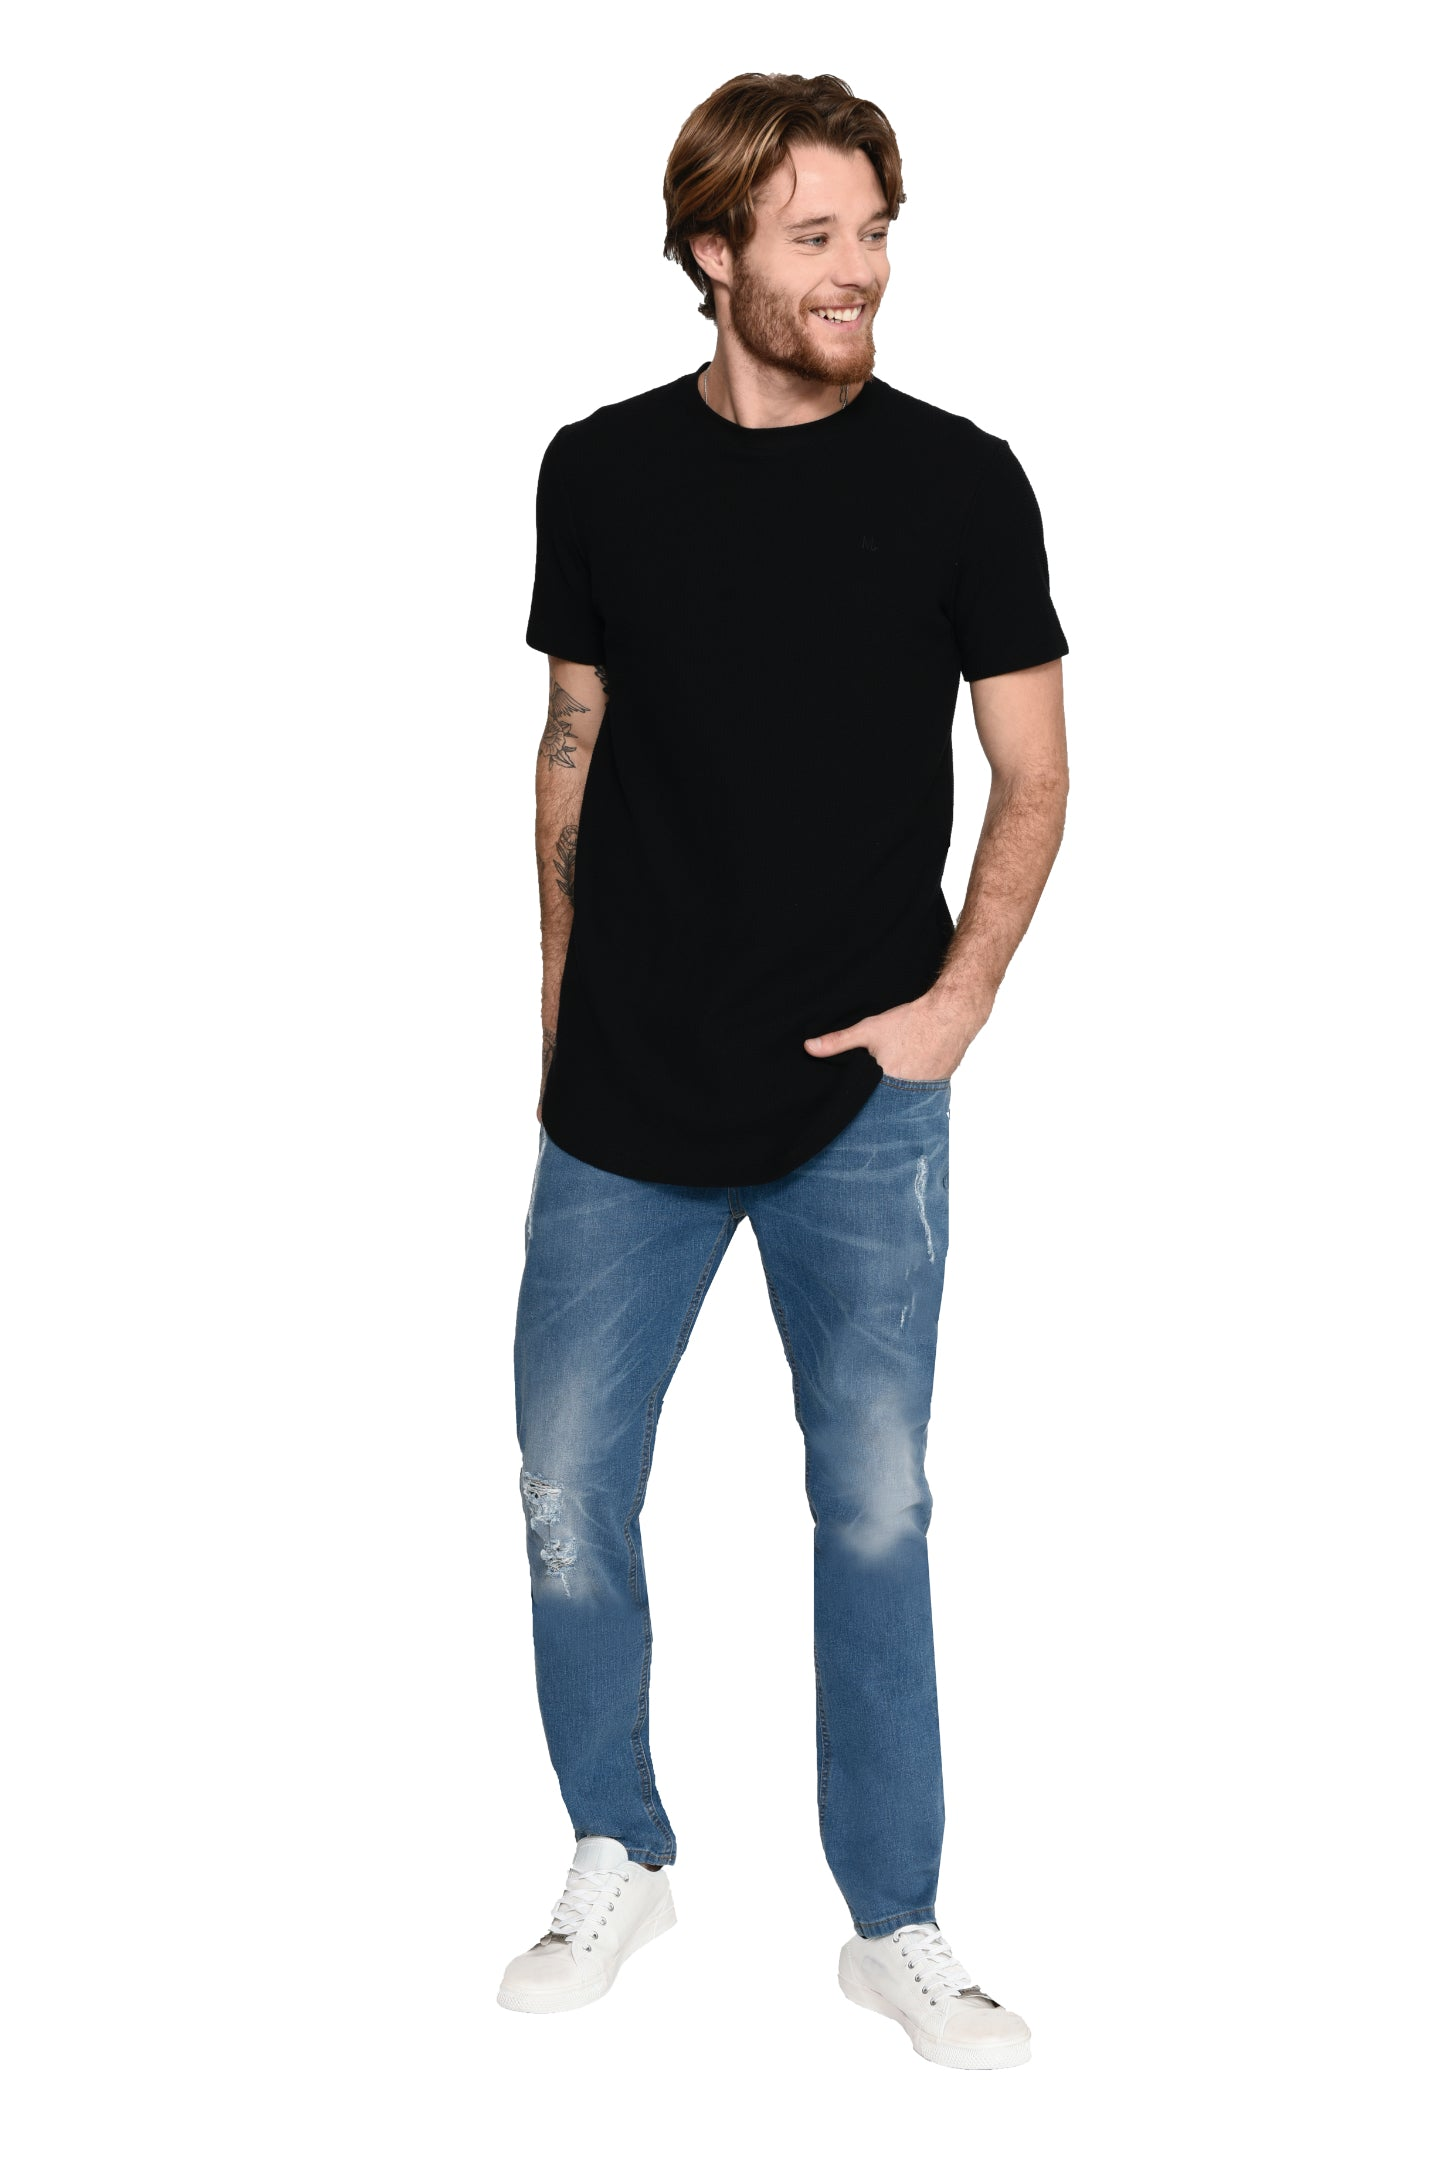 CAMISETA M/C LONG LISA QUADRILÊ